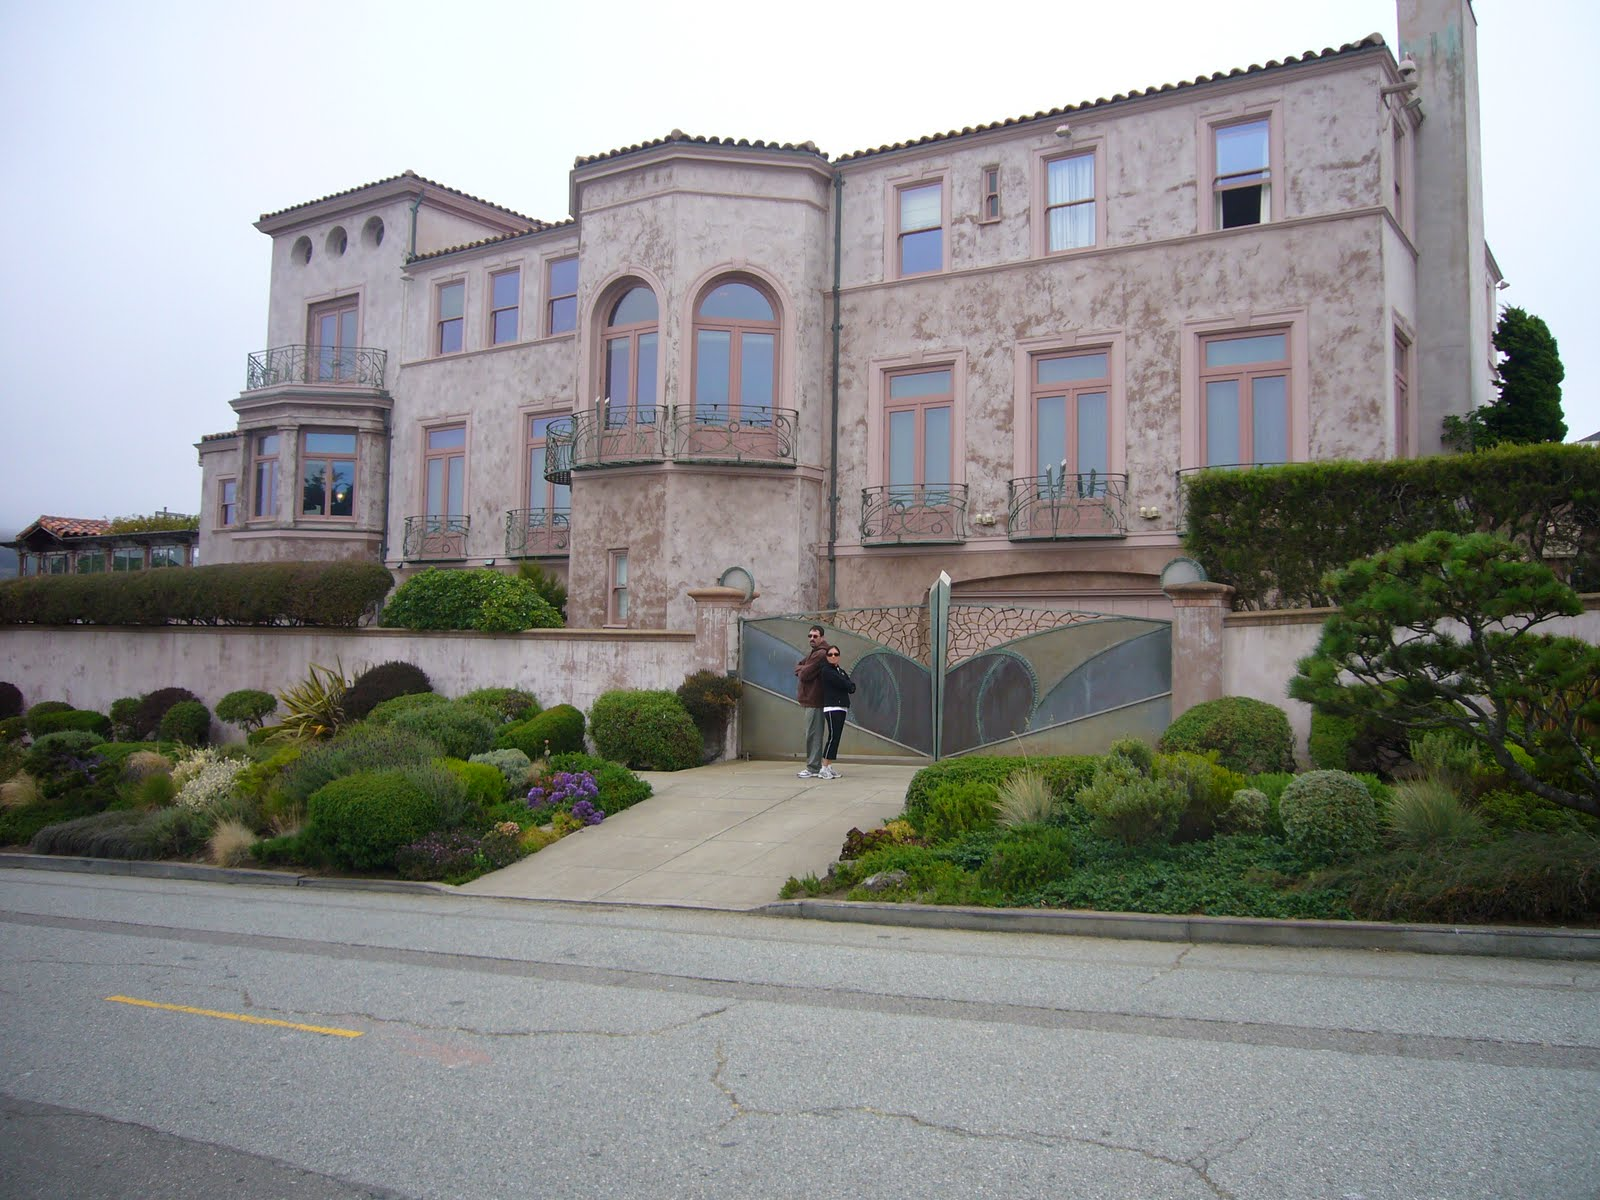 wonderful robin williams houses all known as the villa of smiles - Robin Williams Houses